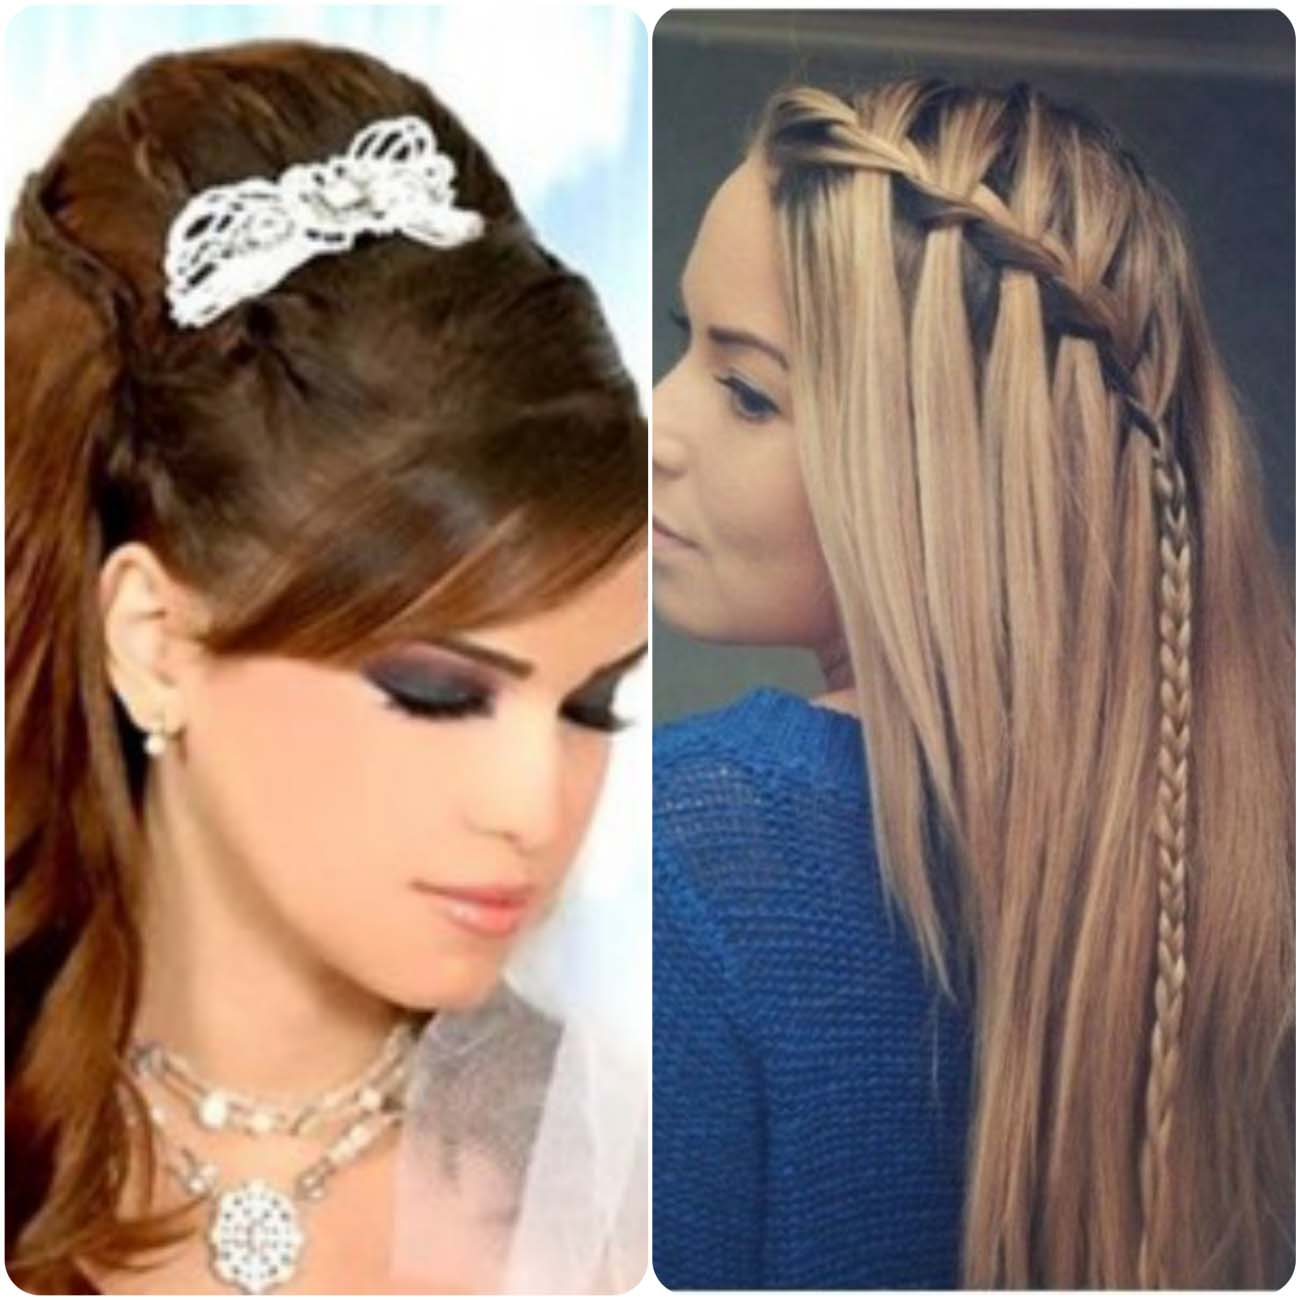 Beautiful Latest Hairstyles For Women Photos - Styles & Ideas 2018 ...